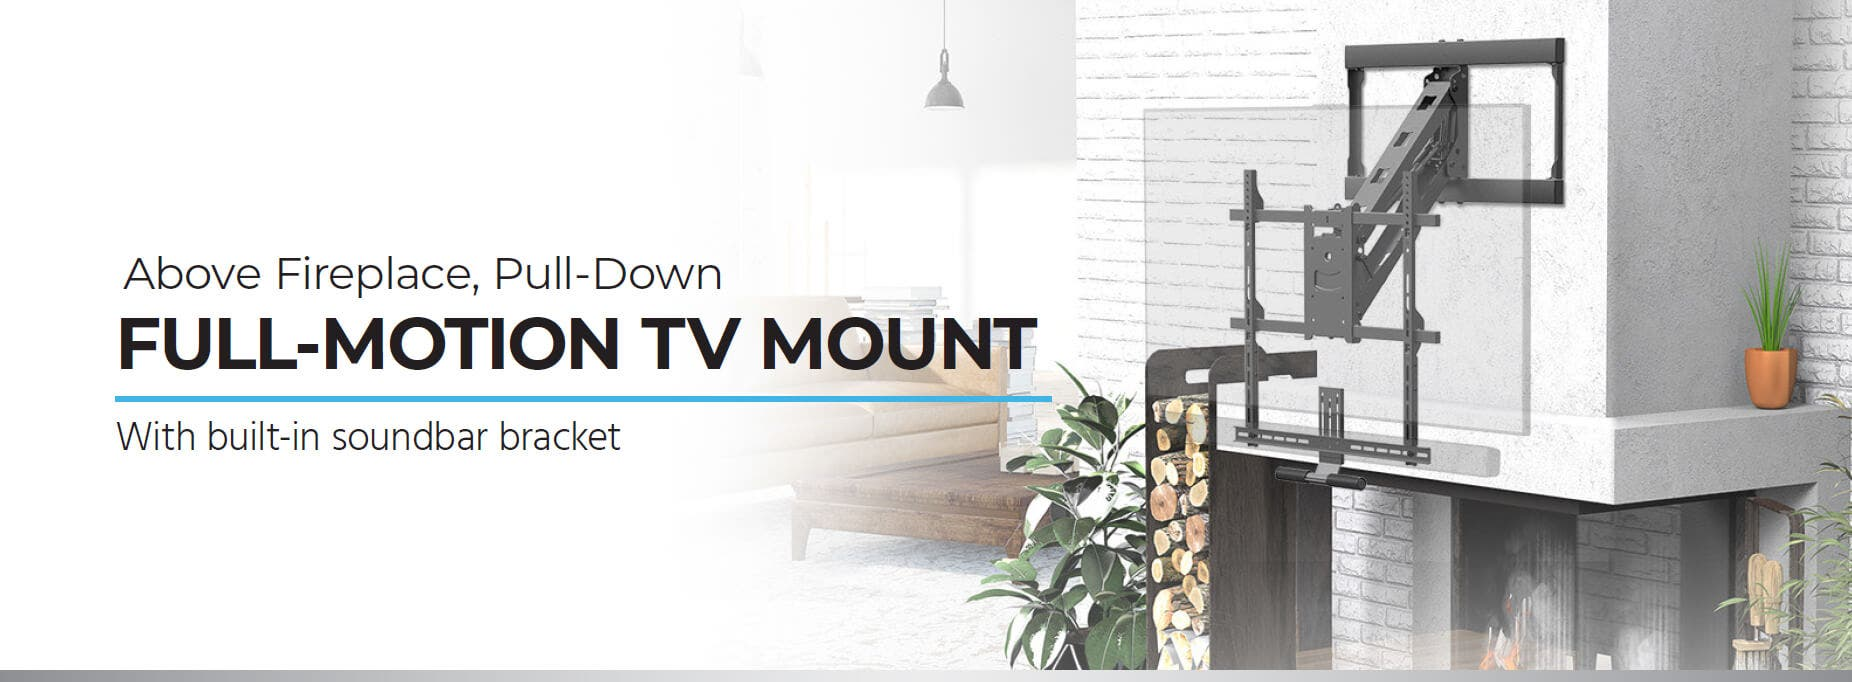 FULL-MOTION TV MOUNT